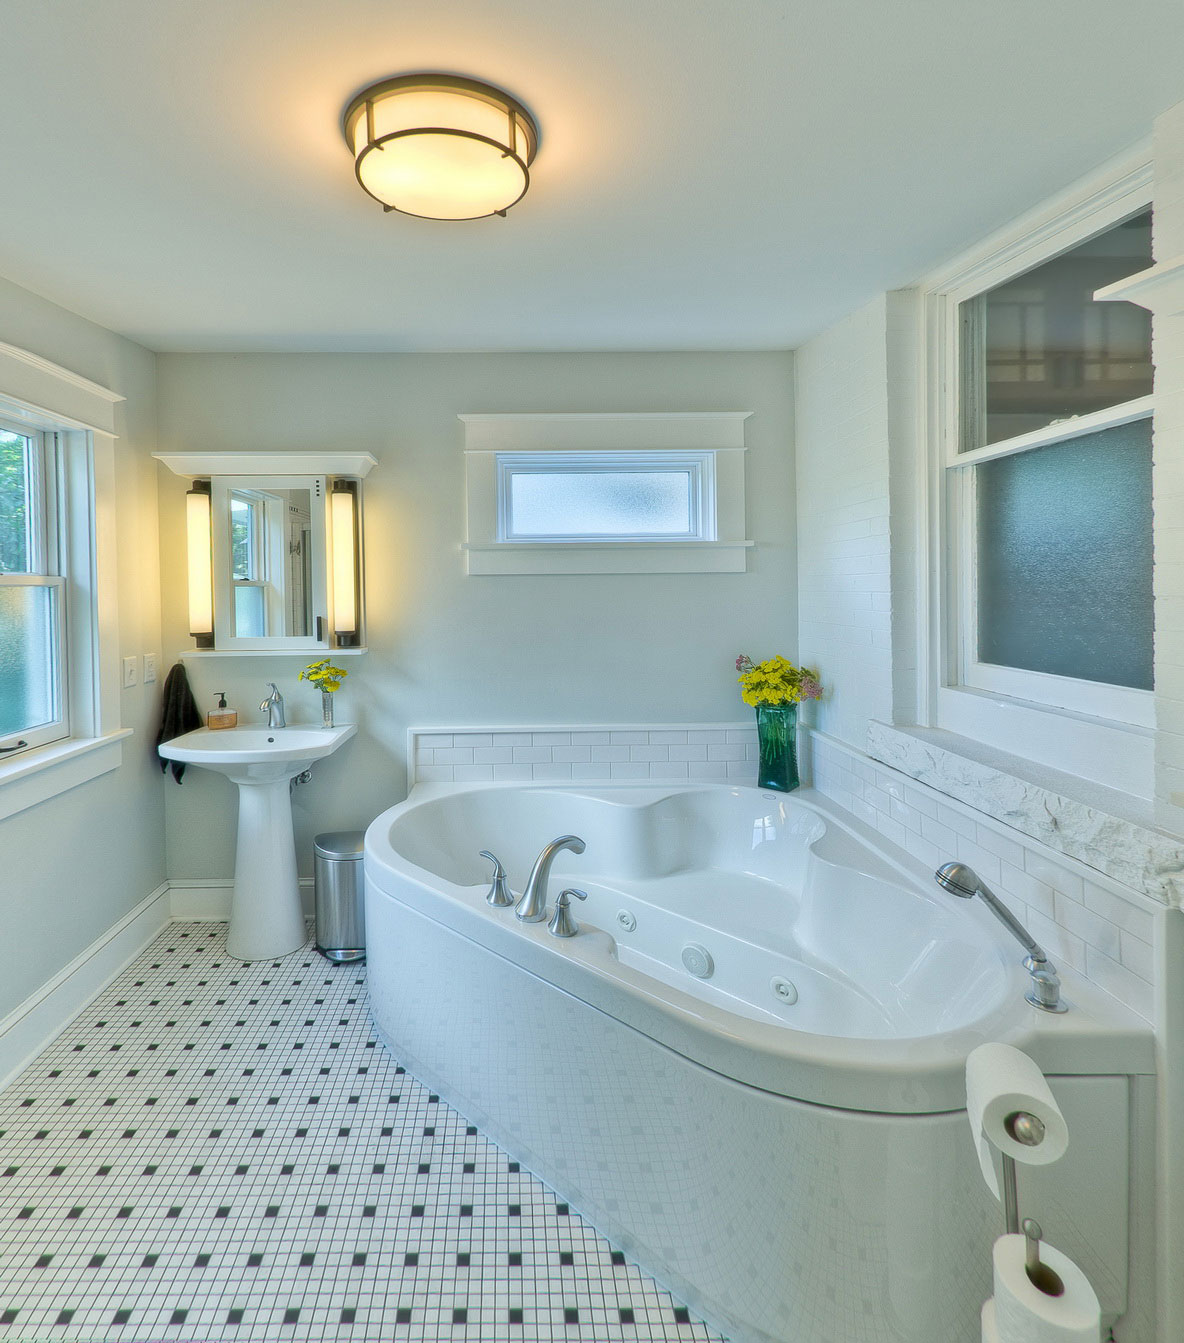 5 photos of the 5 excellent small bathroom design ideas on a budget